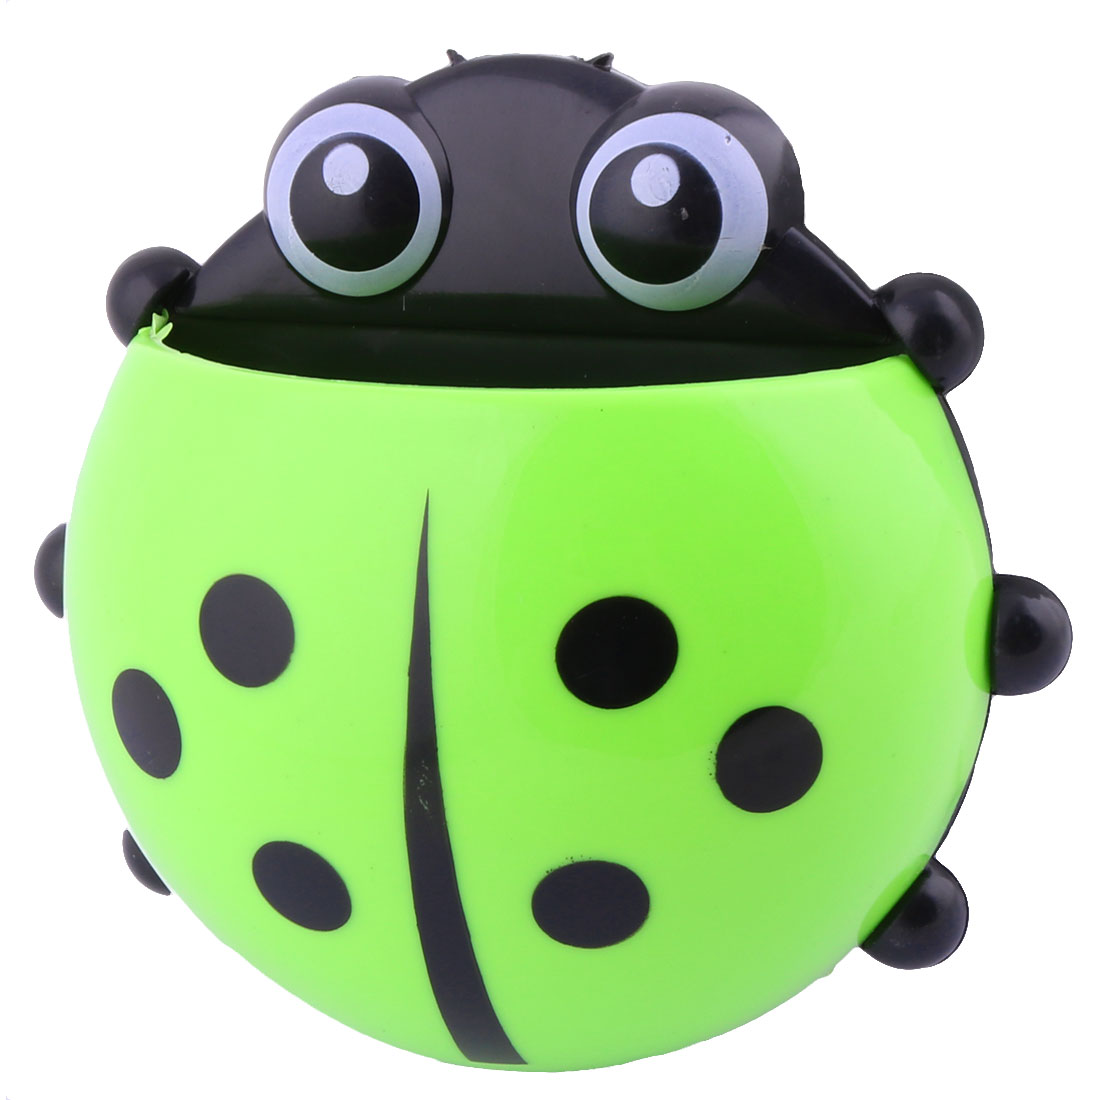 Household Plastic Beetle Shaped Toothbrush Holder Green Black w Suction Cup